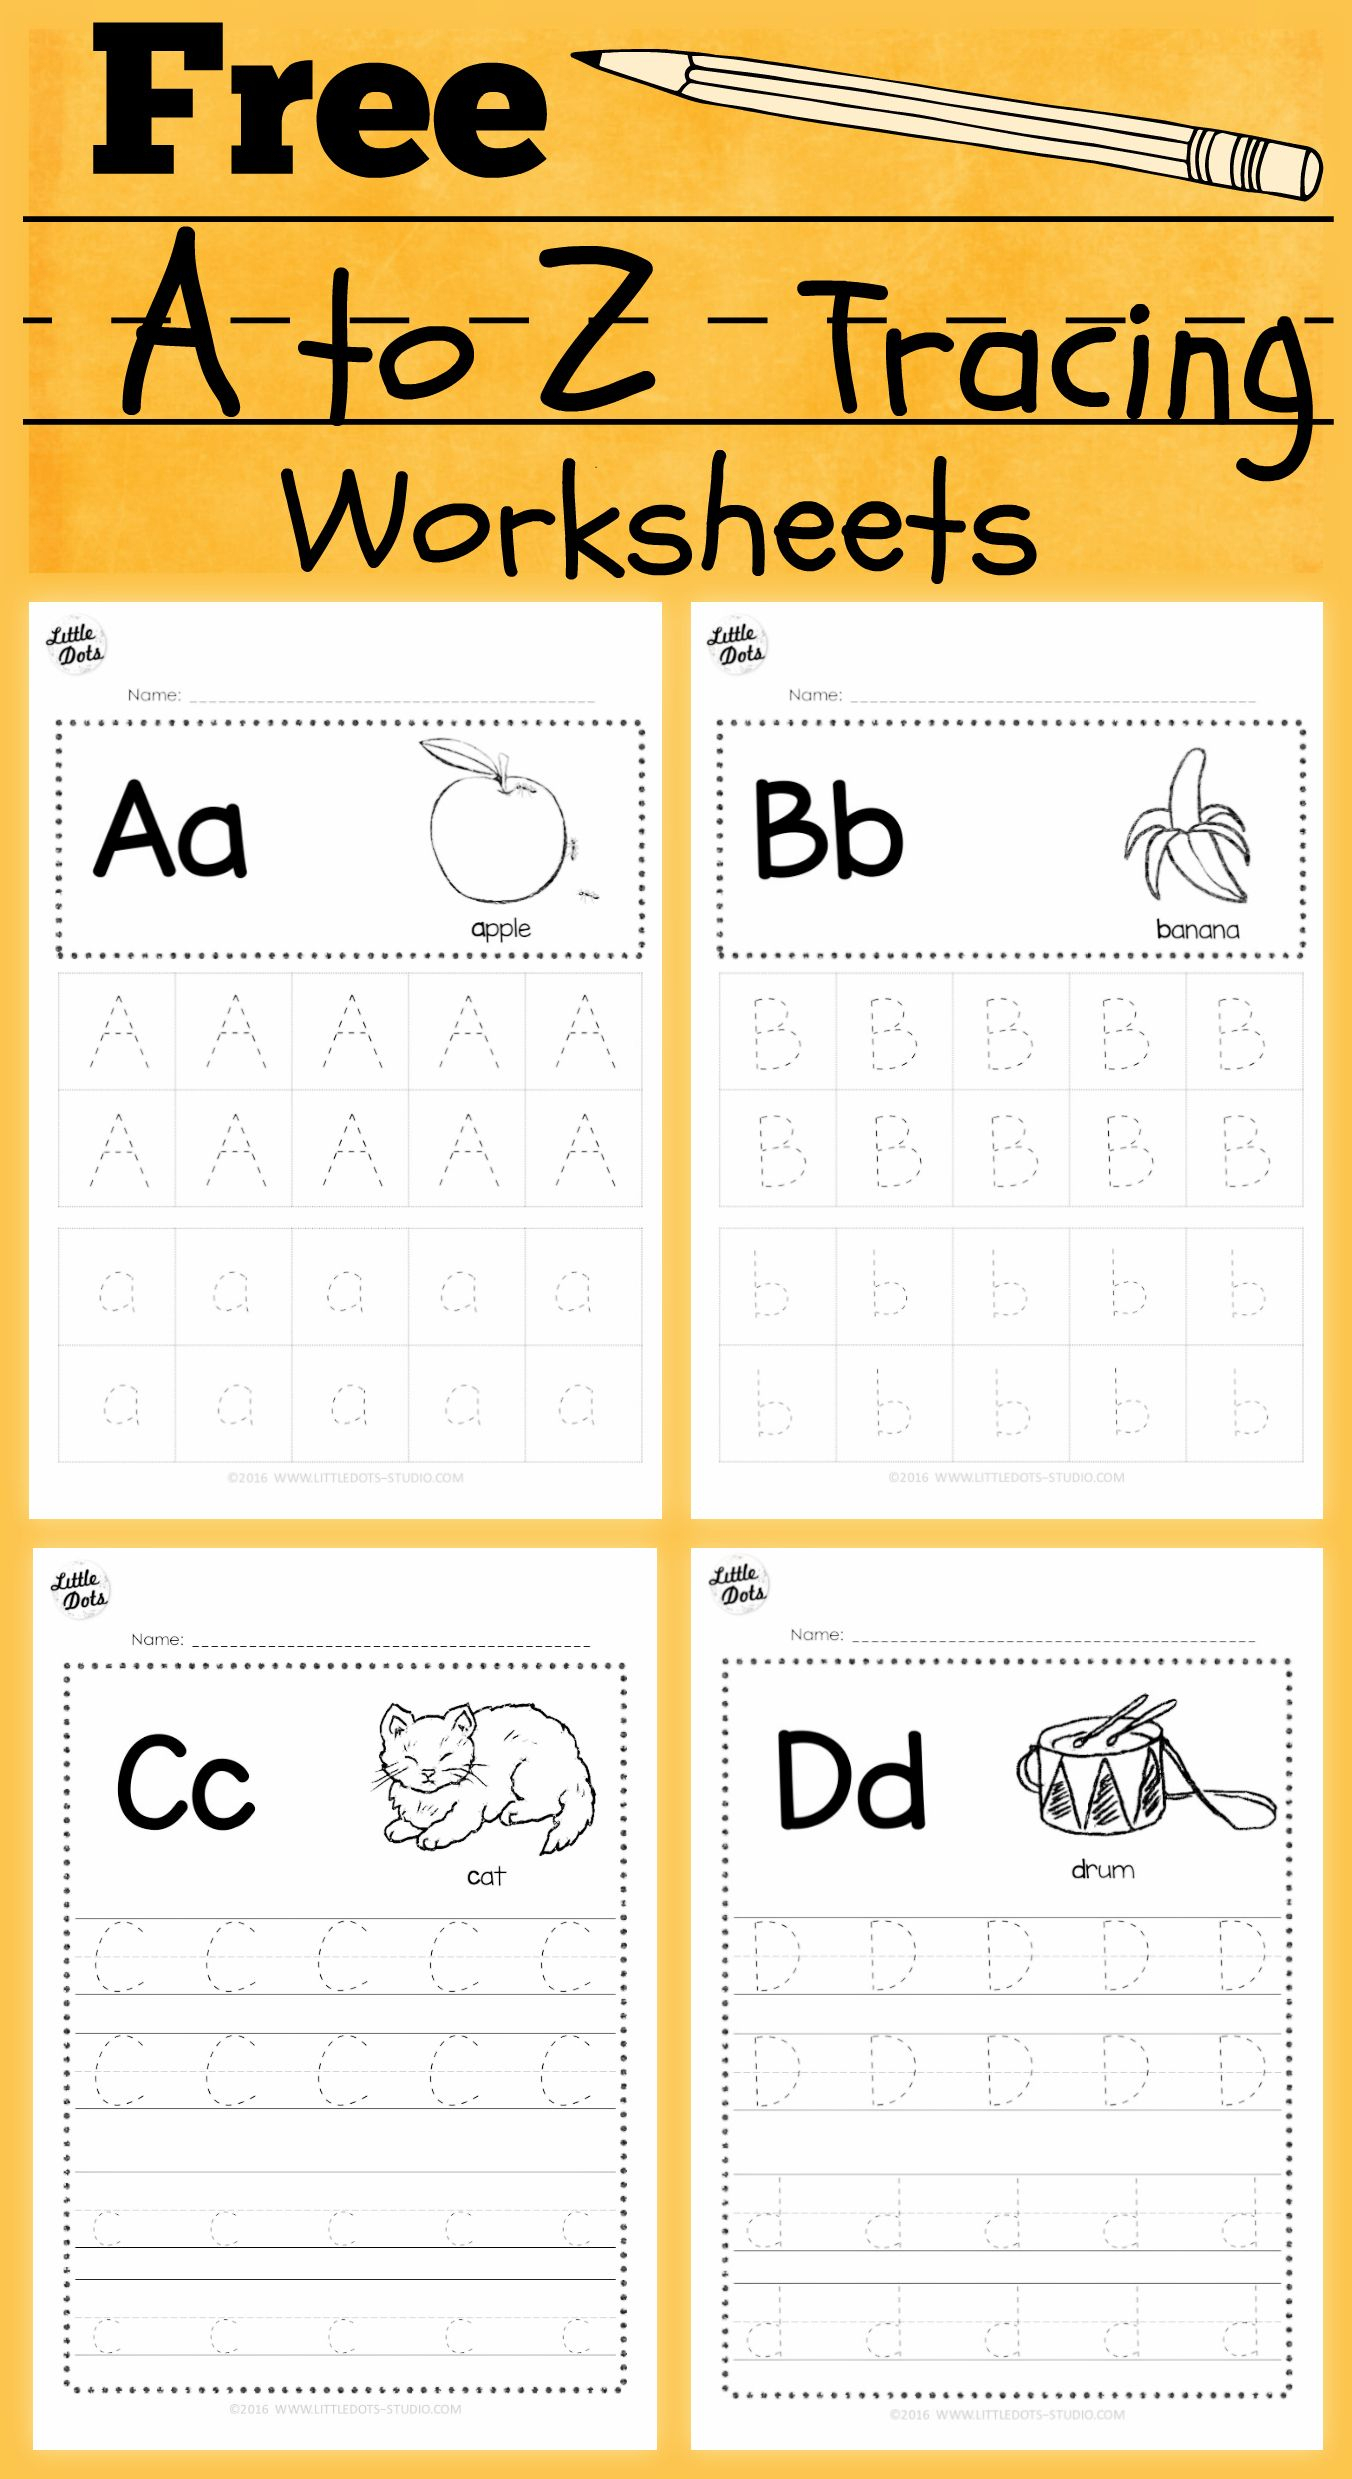 Download Free Alphabet Tracing Worksheets For Letter A To Z for Alphabet Worksheets Free Download